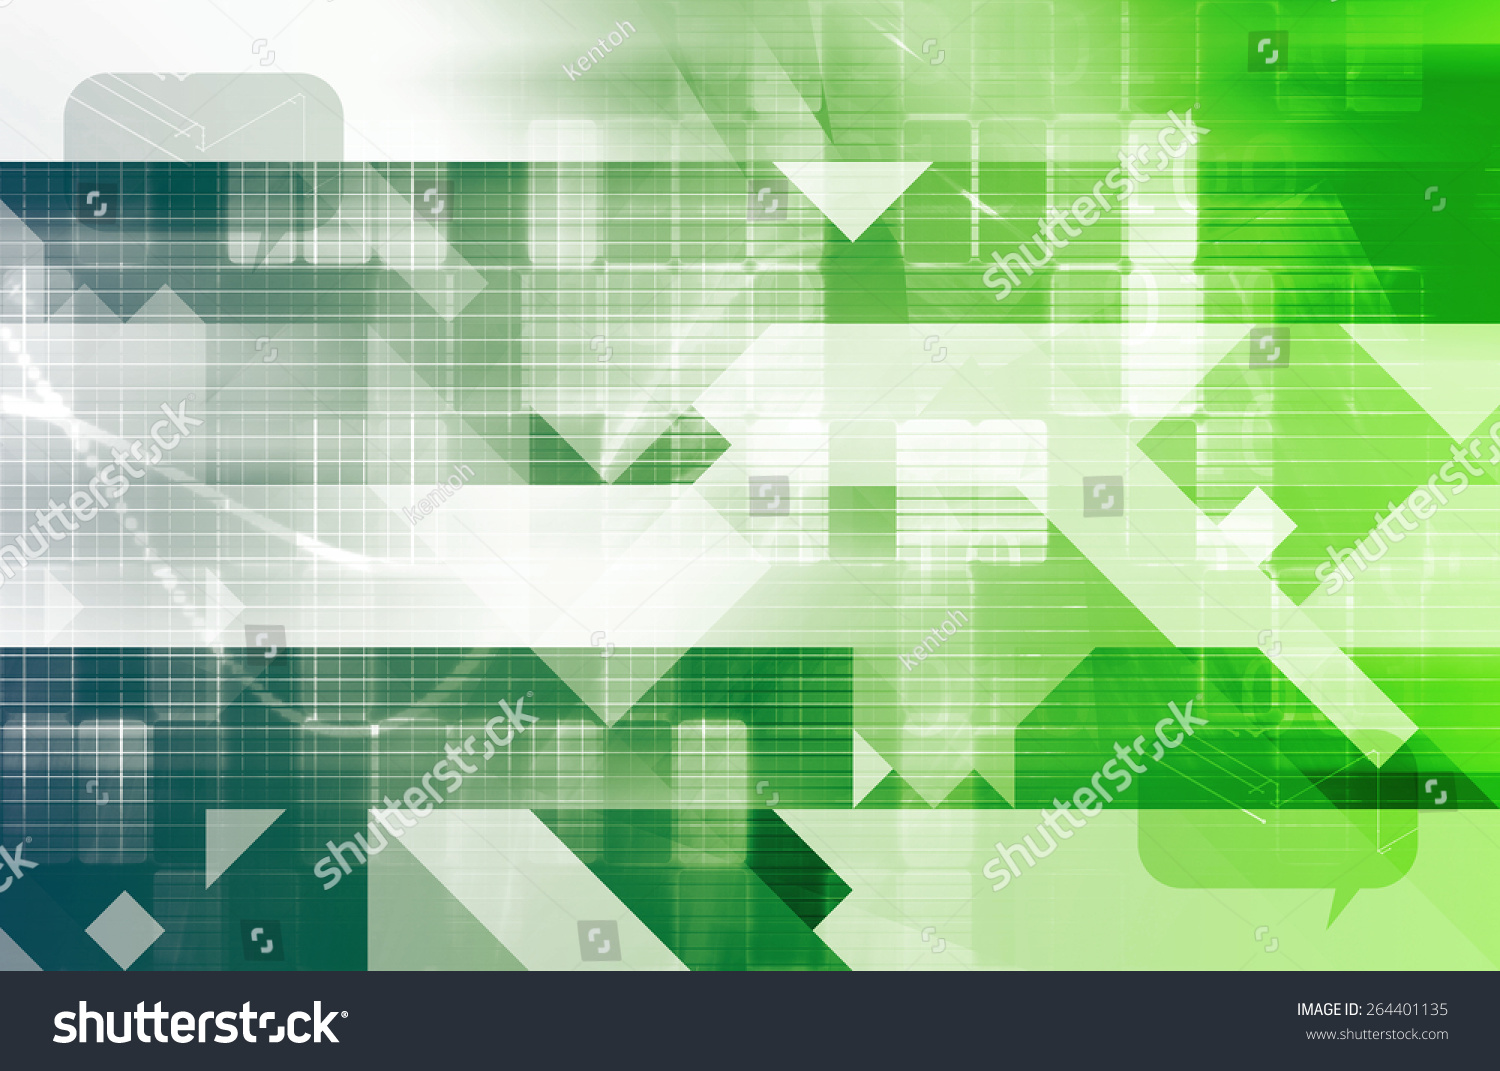 Database System Updating Data Online Art Stock Illustration Protection Dbms With